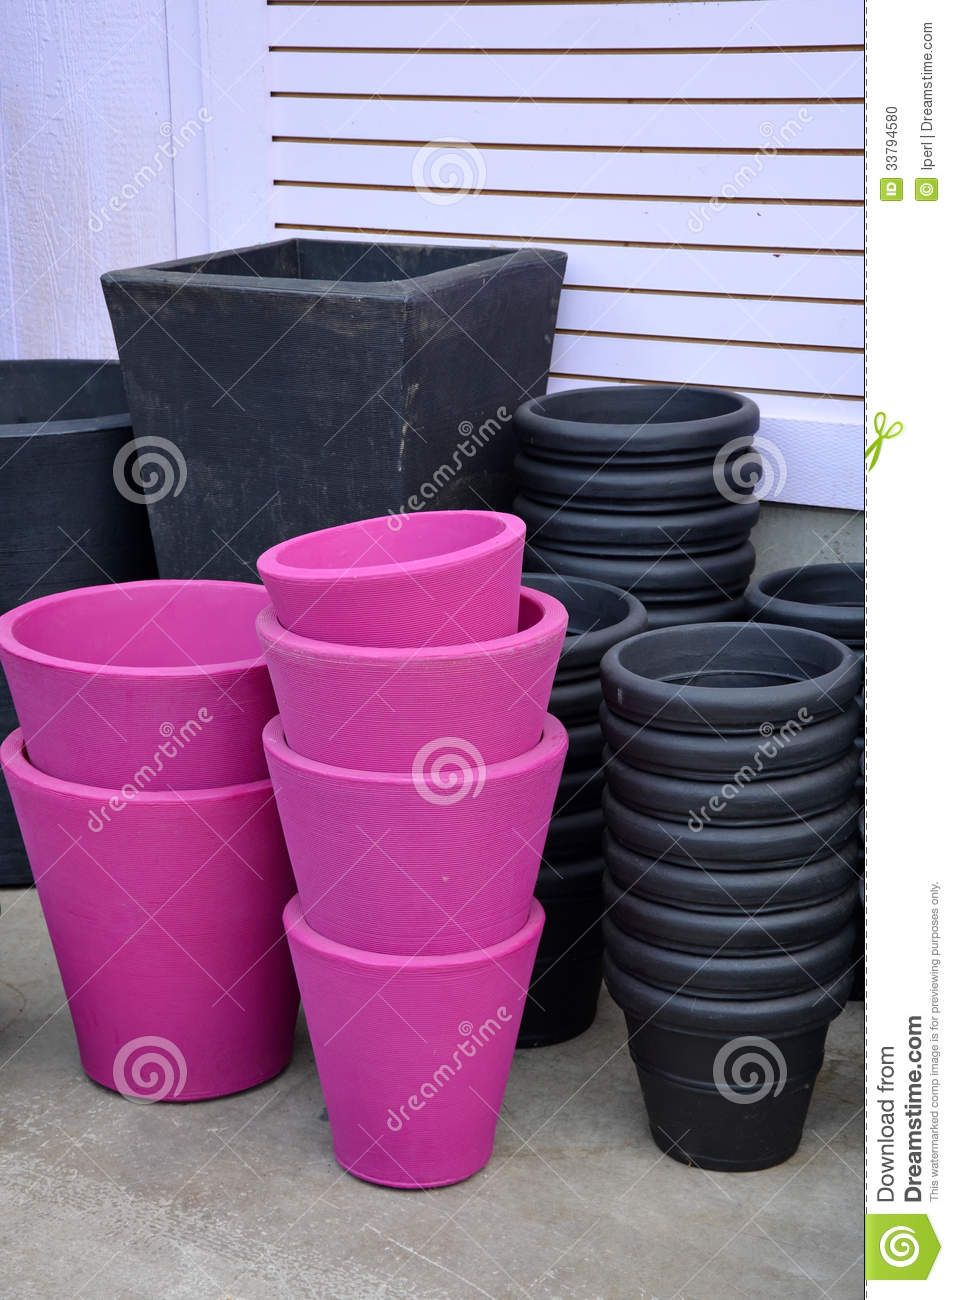 Black and pink flower pots stock photo image of black 33794580 black and pink flower pots mightylinksfo